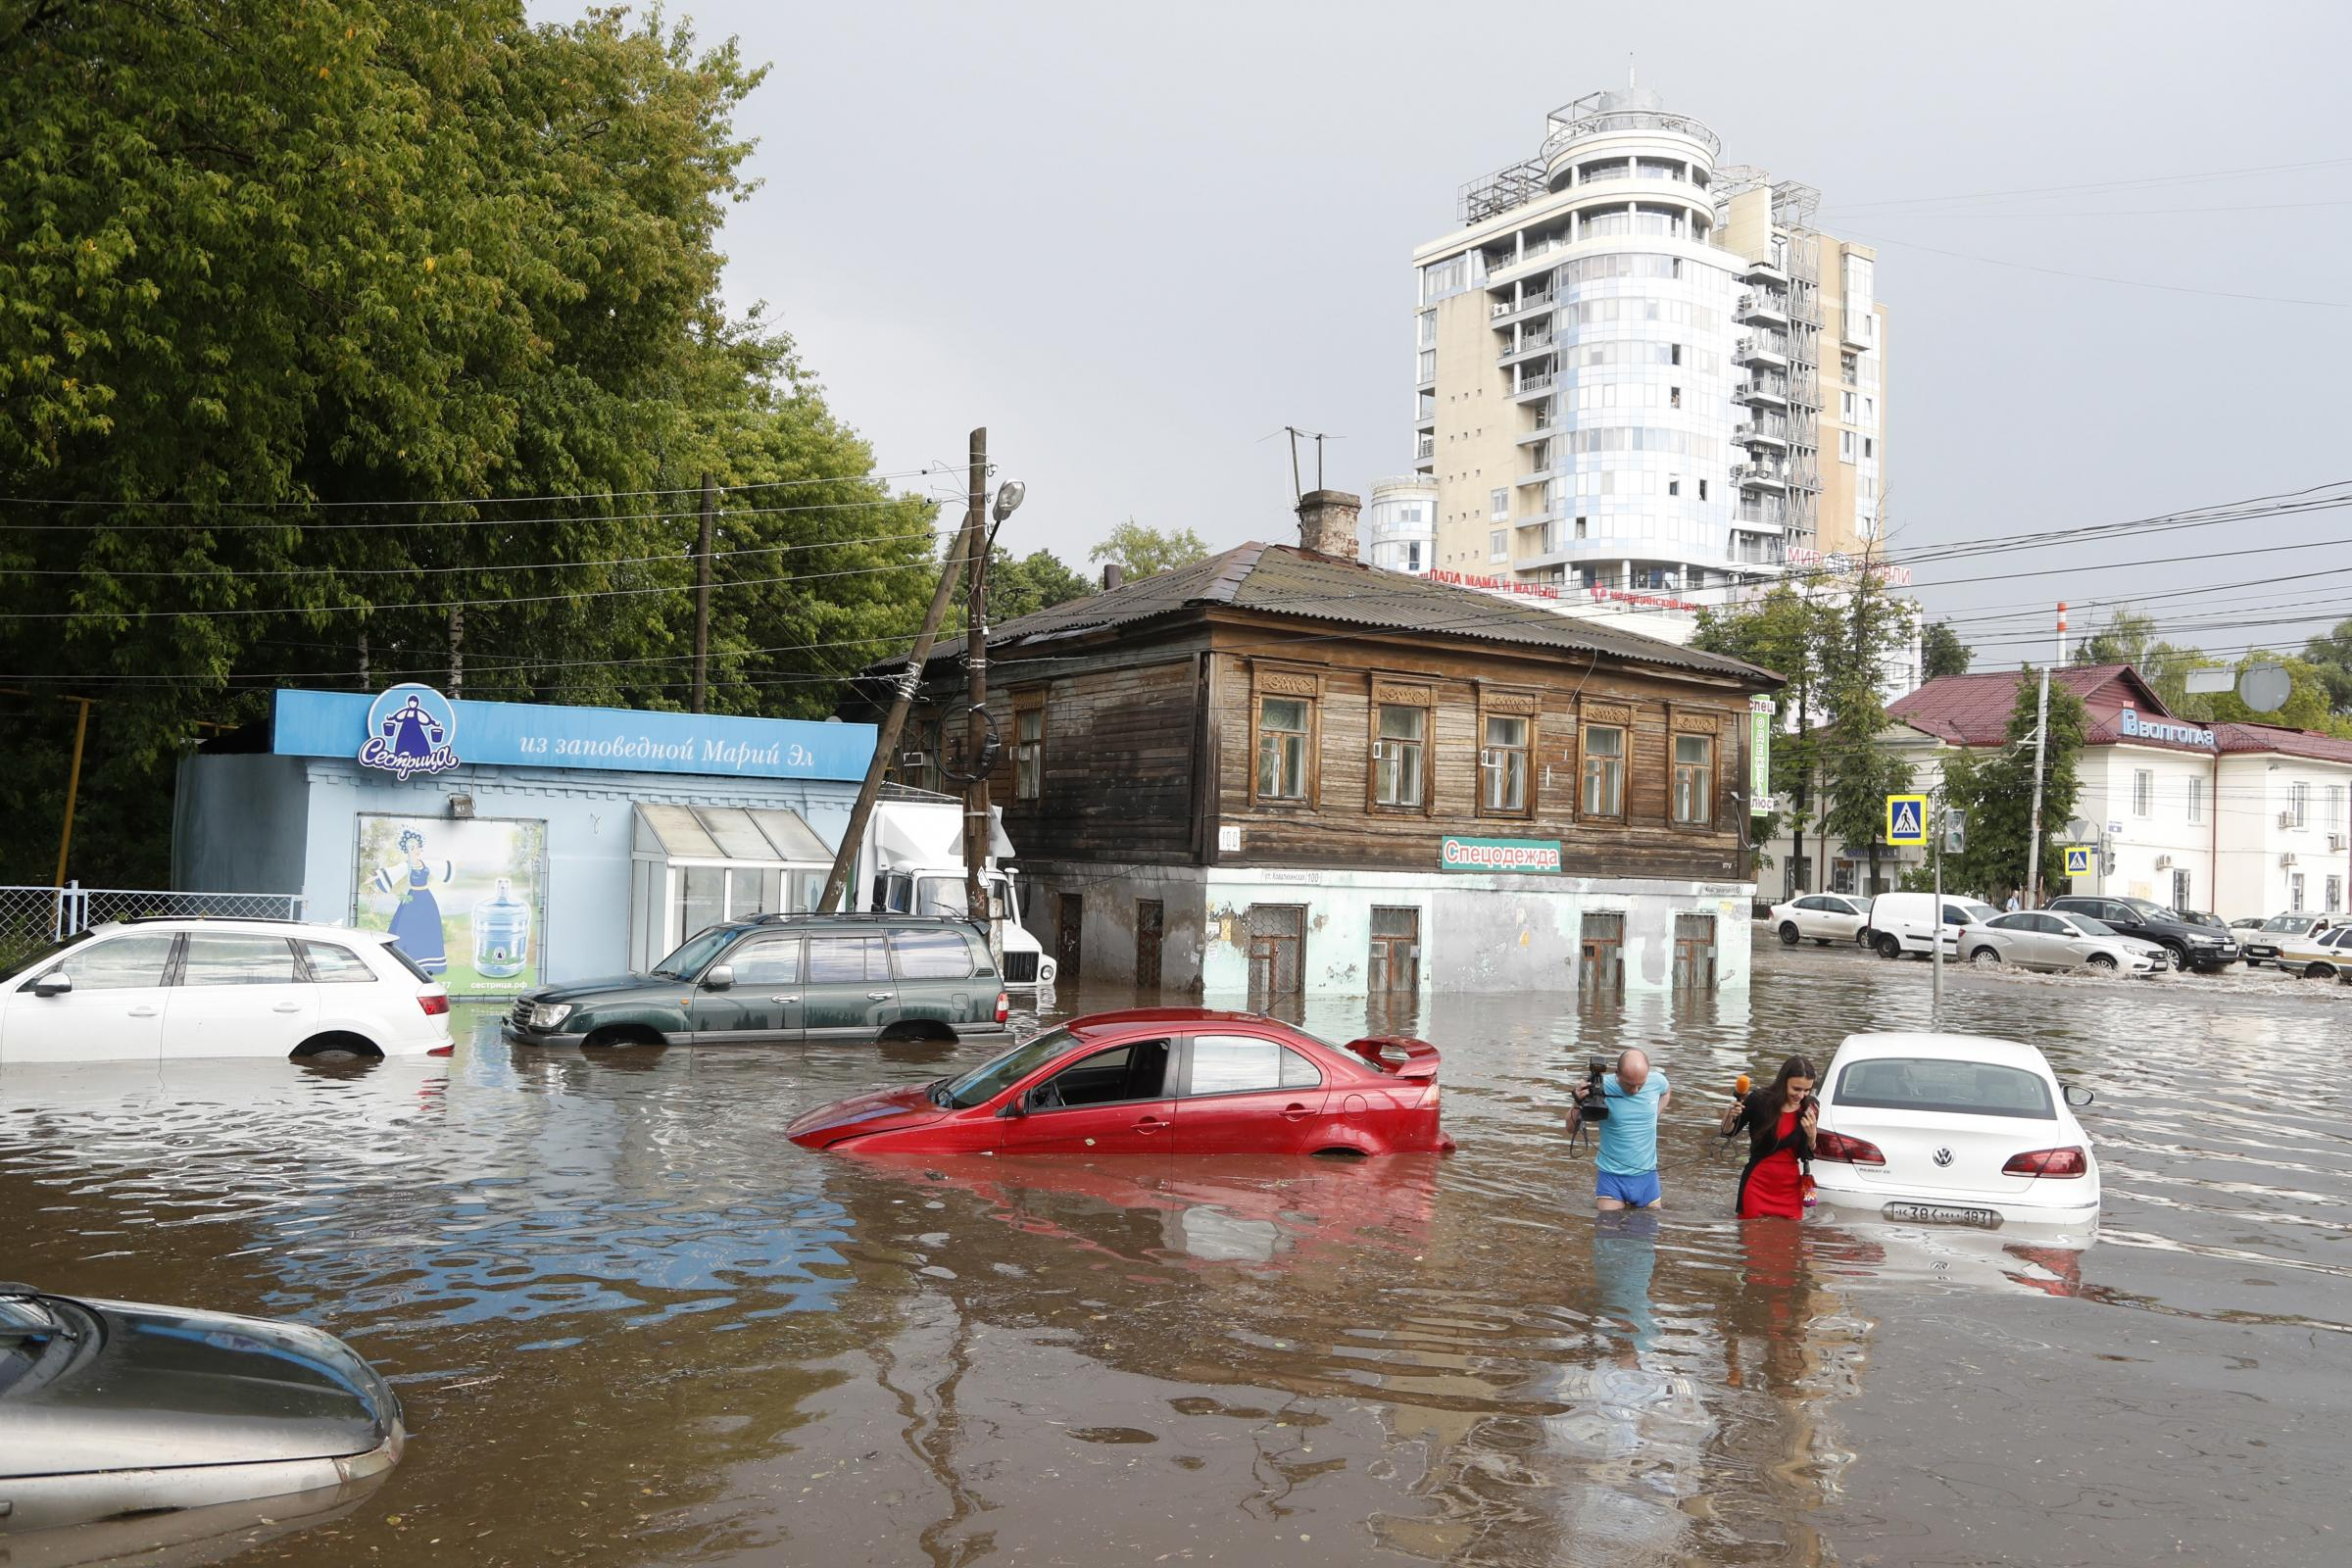 A flooded street in Nizhny Novgorod